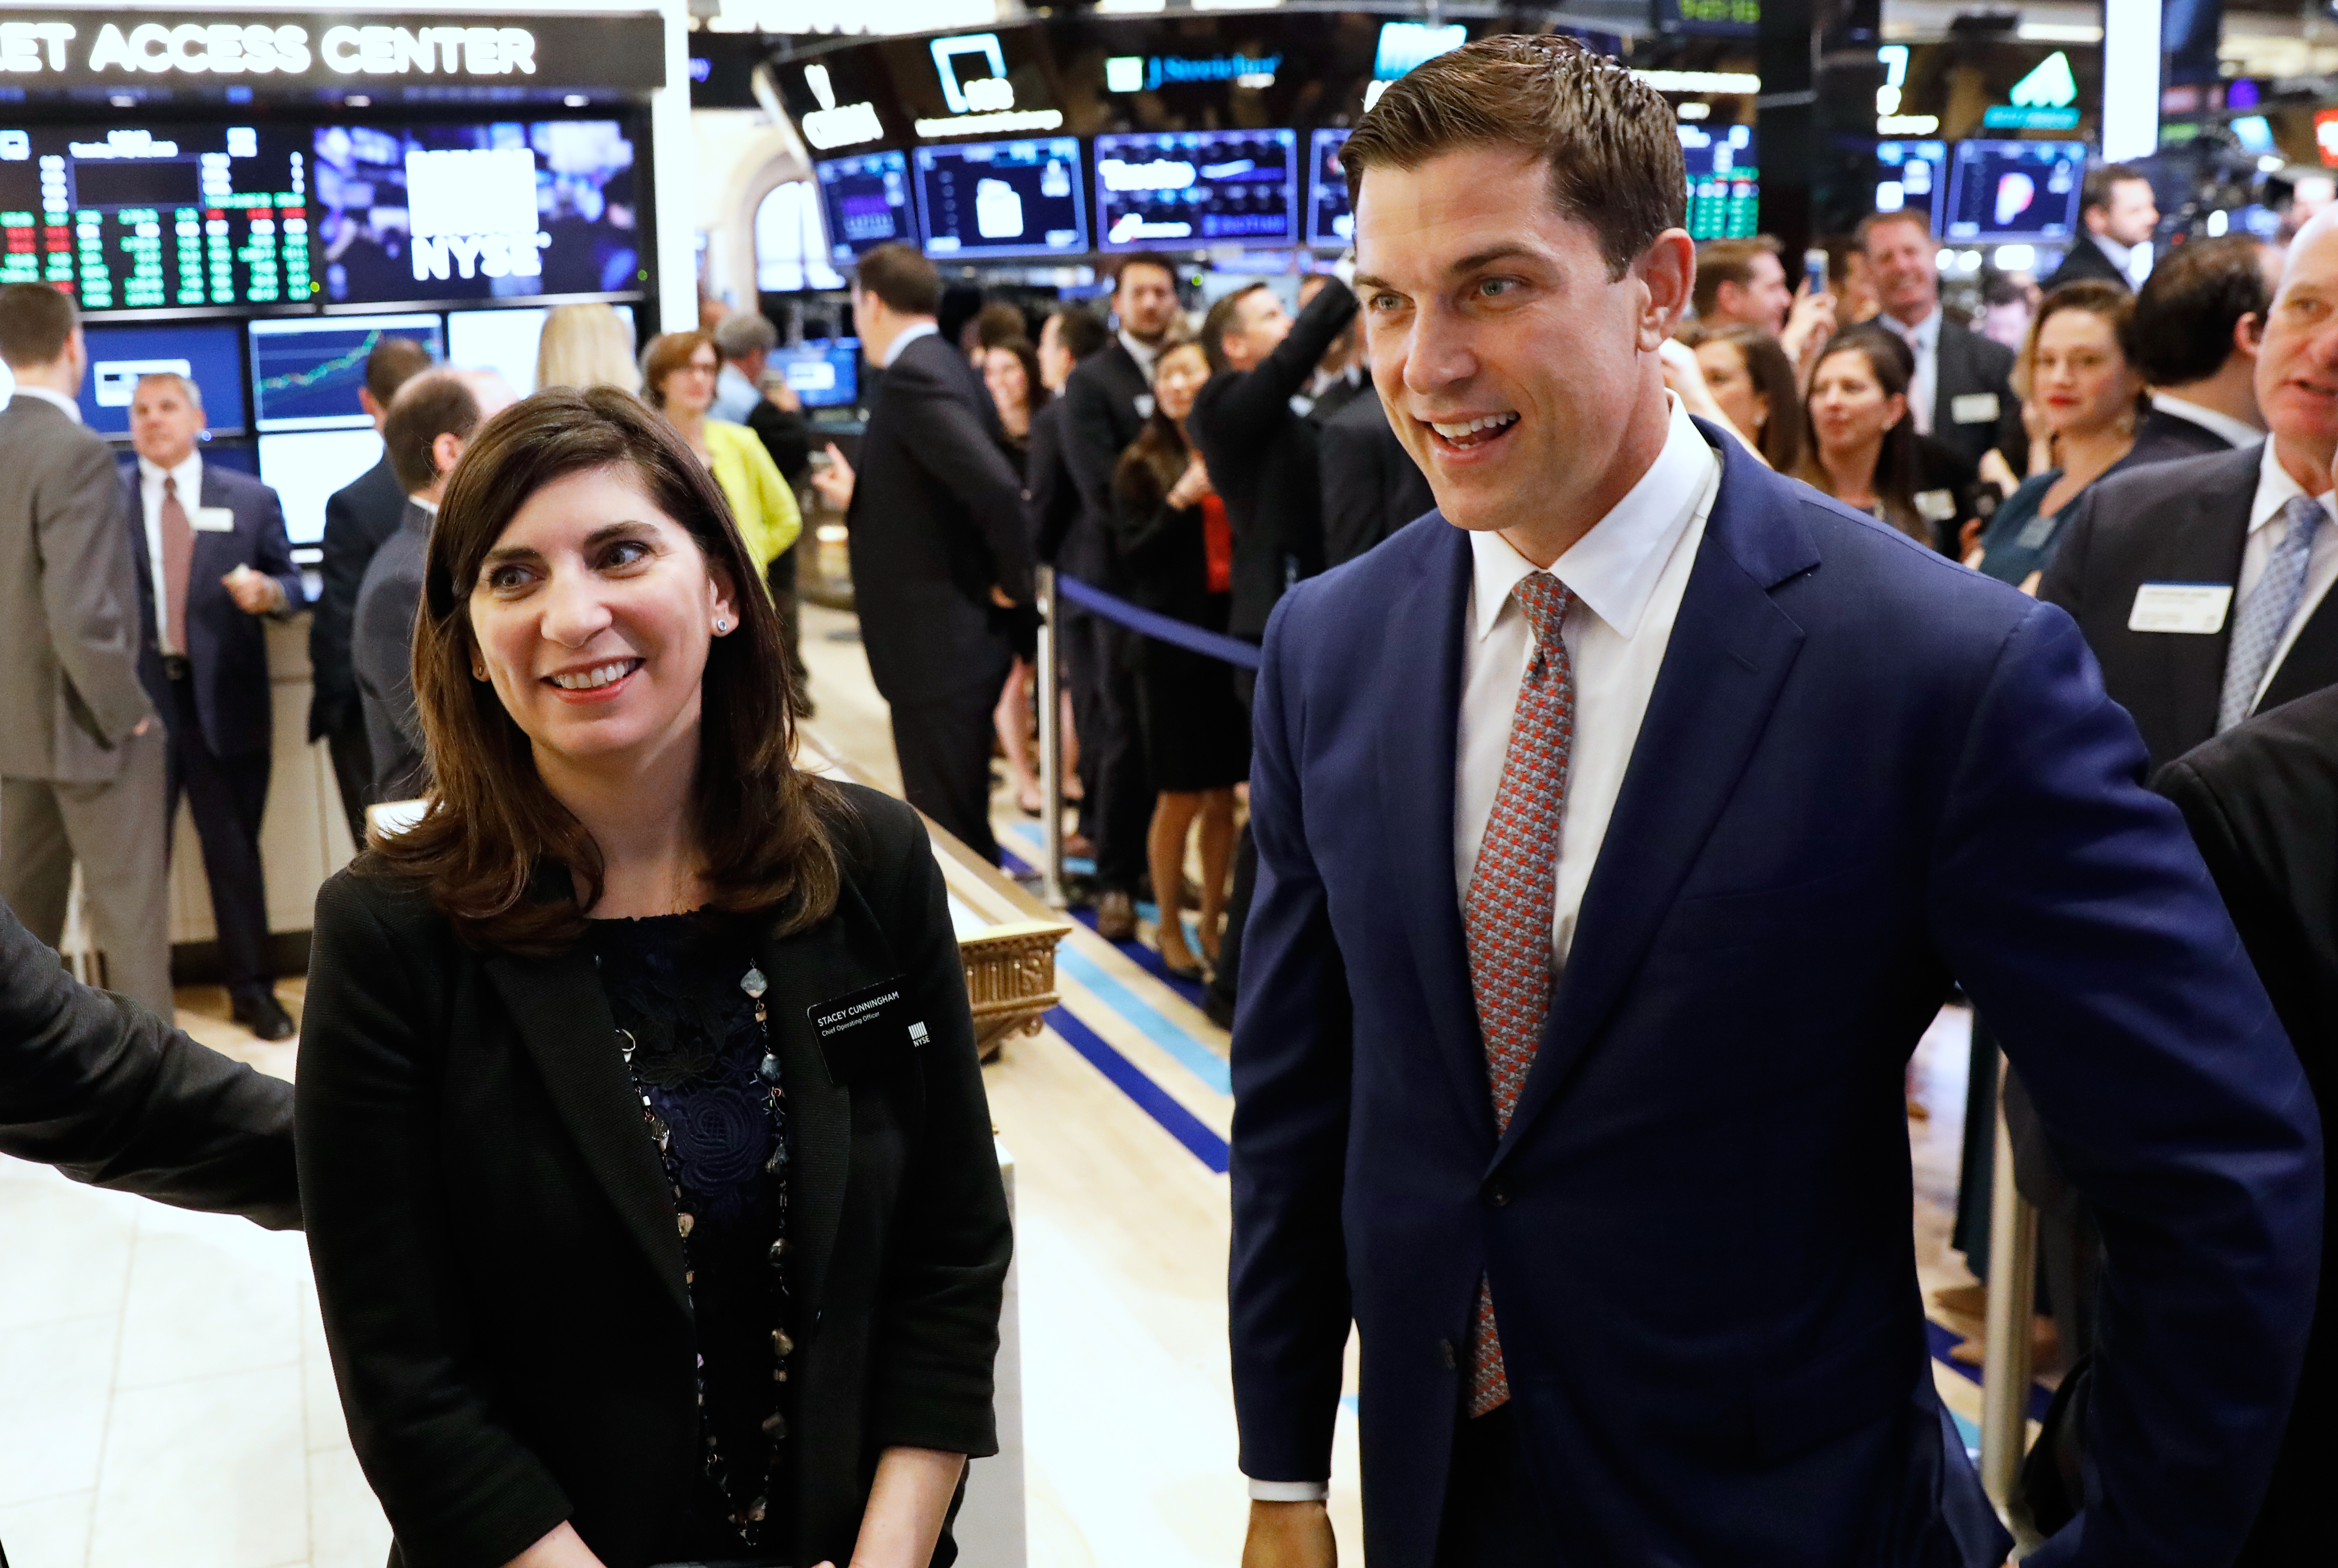 Stacey Cunningham, the one-time NYSE intern who will be the New York Stock Exchange's (NYSE) first woman president, appears at the NYSE with NYSE president Thomas W. Farley in New York